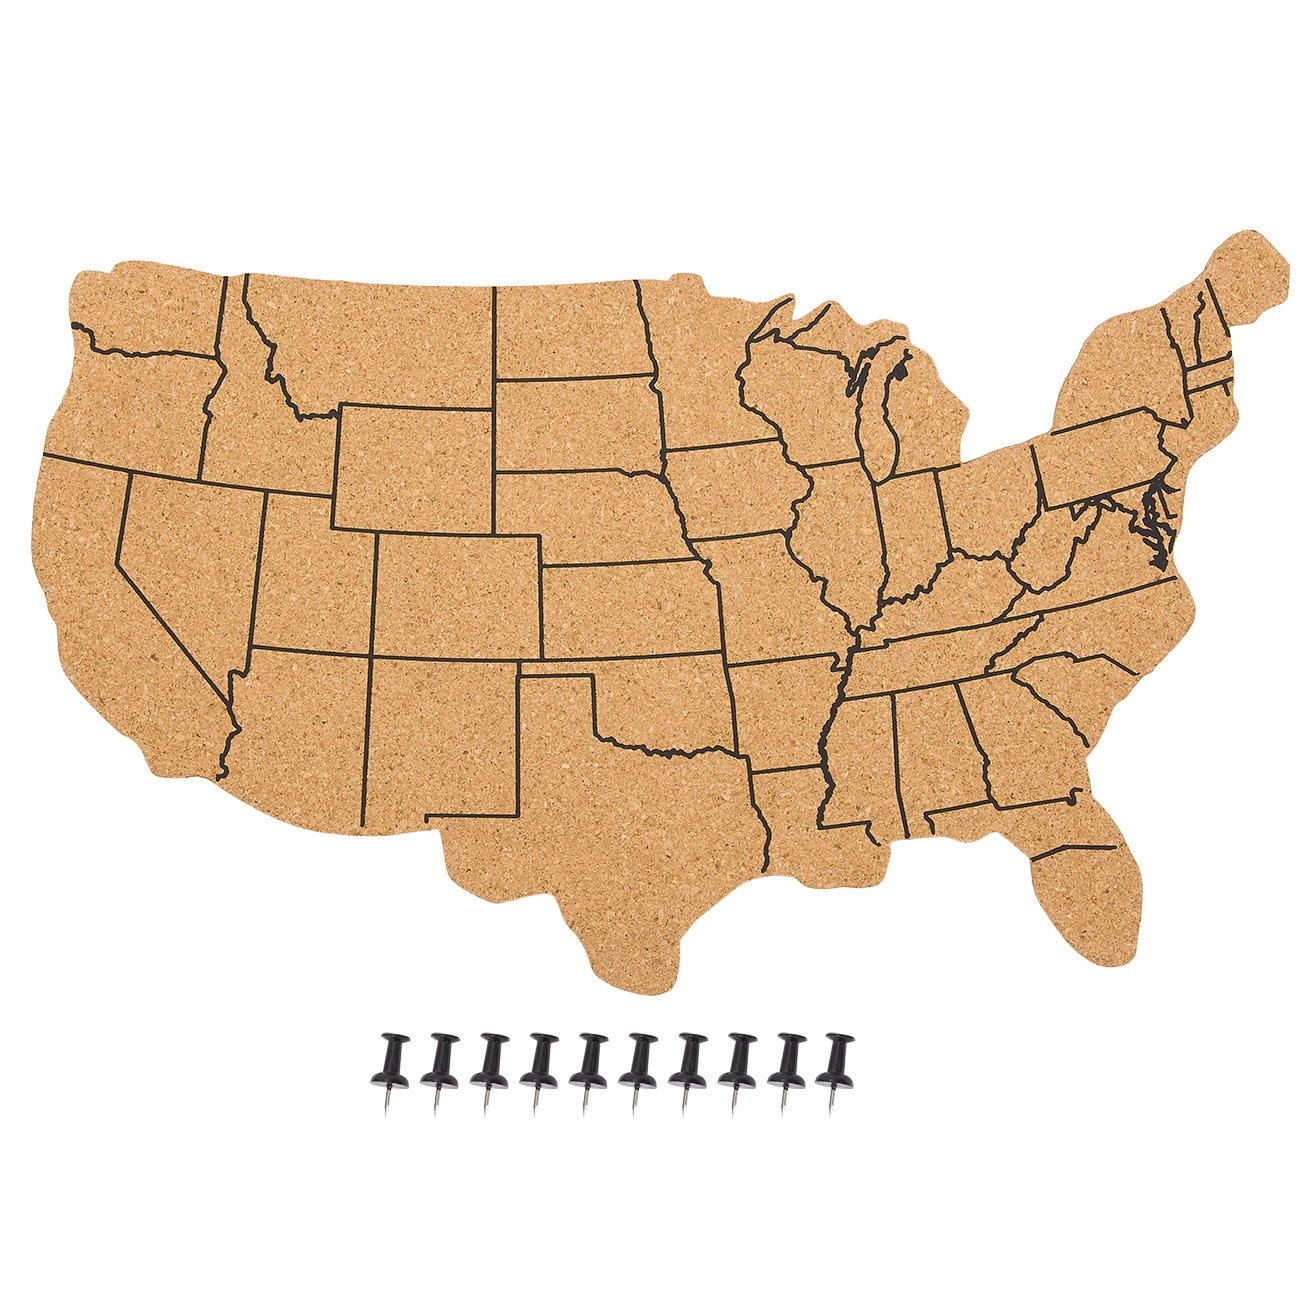 Juvale USA Map Cork Board - Wall-Mounted Hanging Bulletin Board - Perfect DecorHome, Office, Schools Restaurants - 17.7 x 11.2 x 0.03 inches